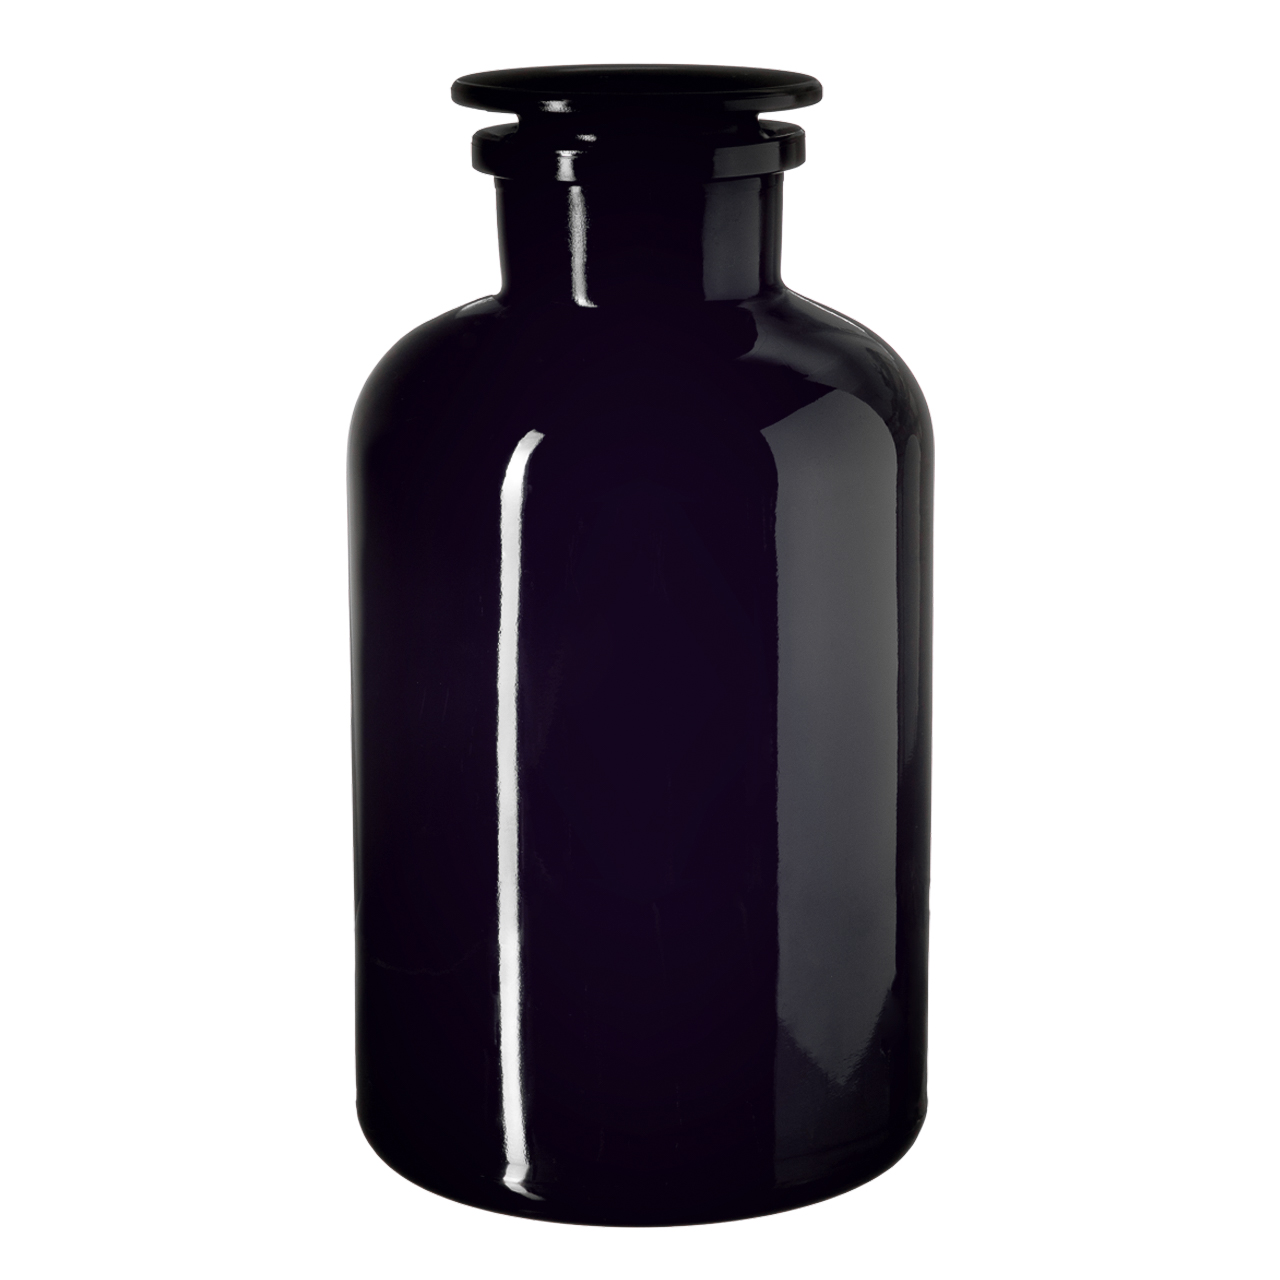 Apothecary jar Libra 2000 ml, Miron, grinded glass stopper